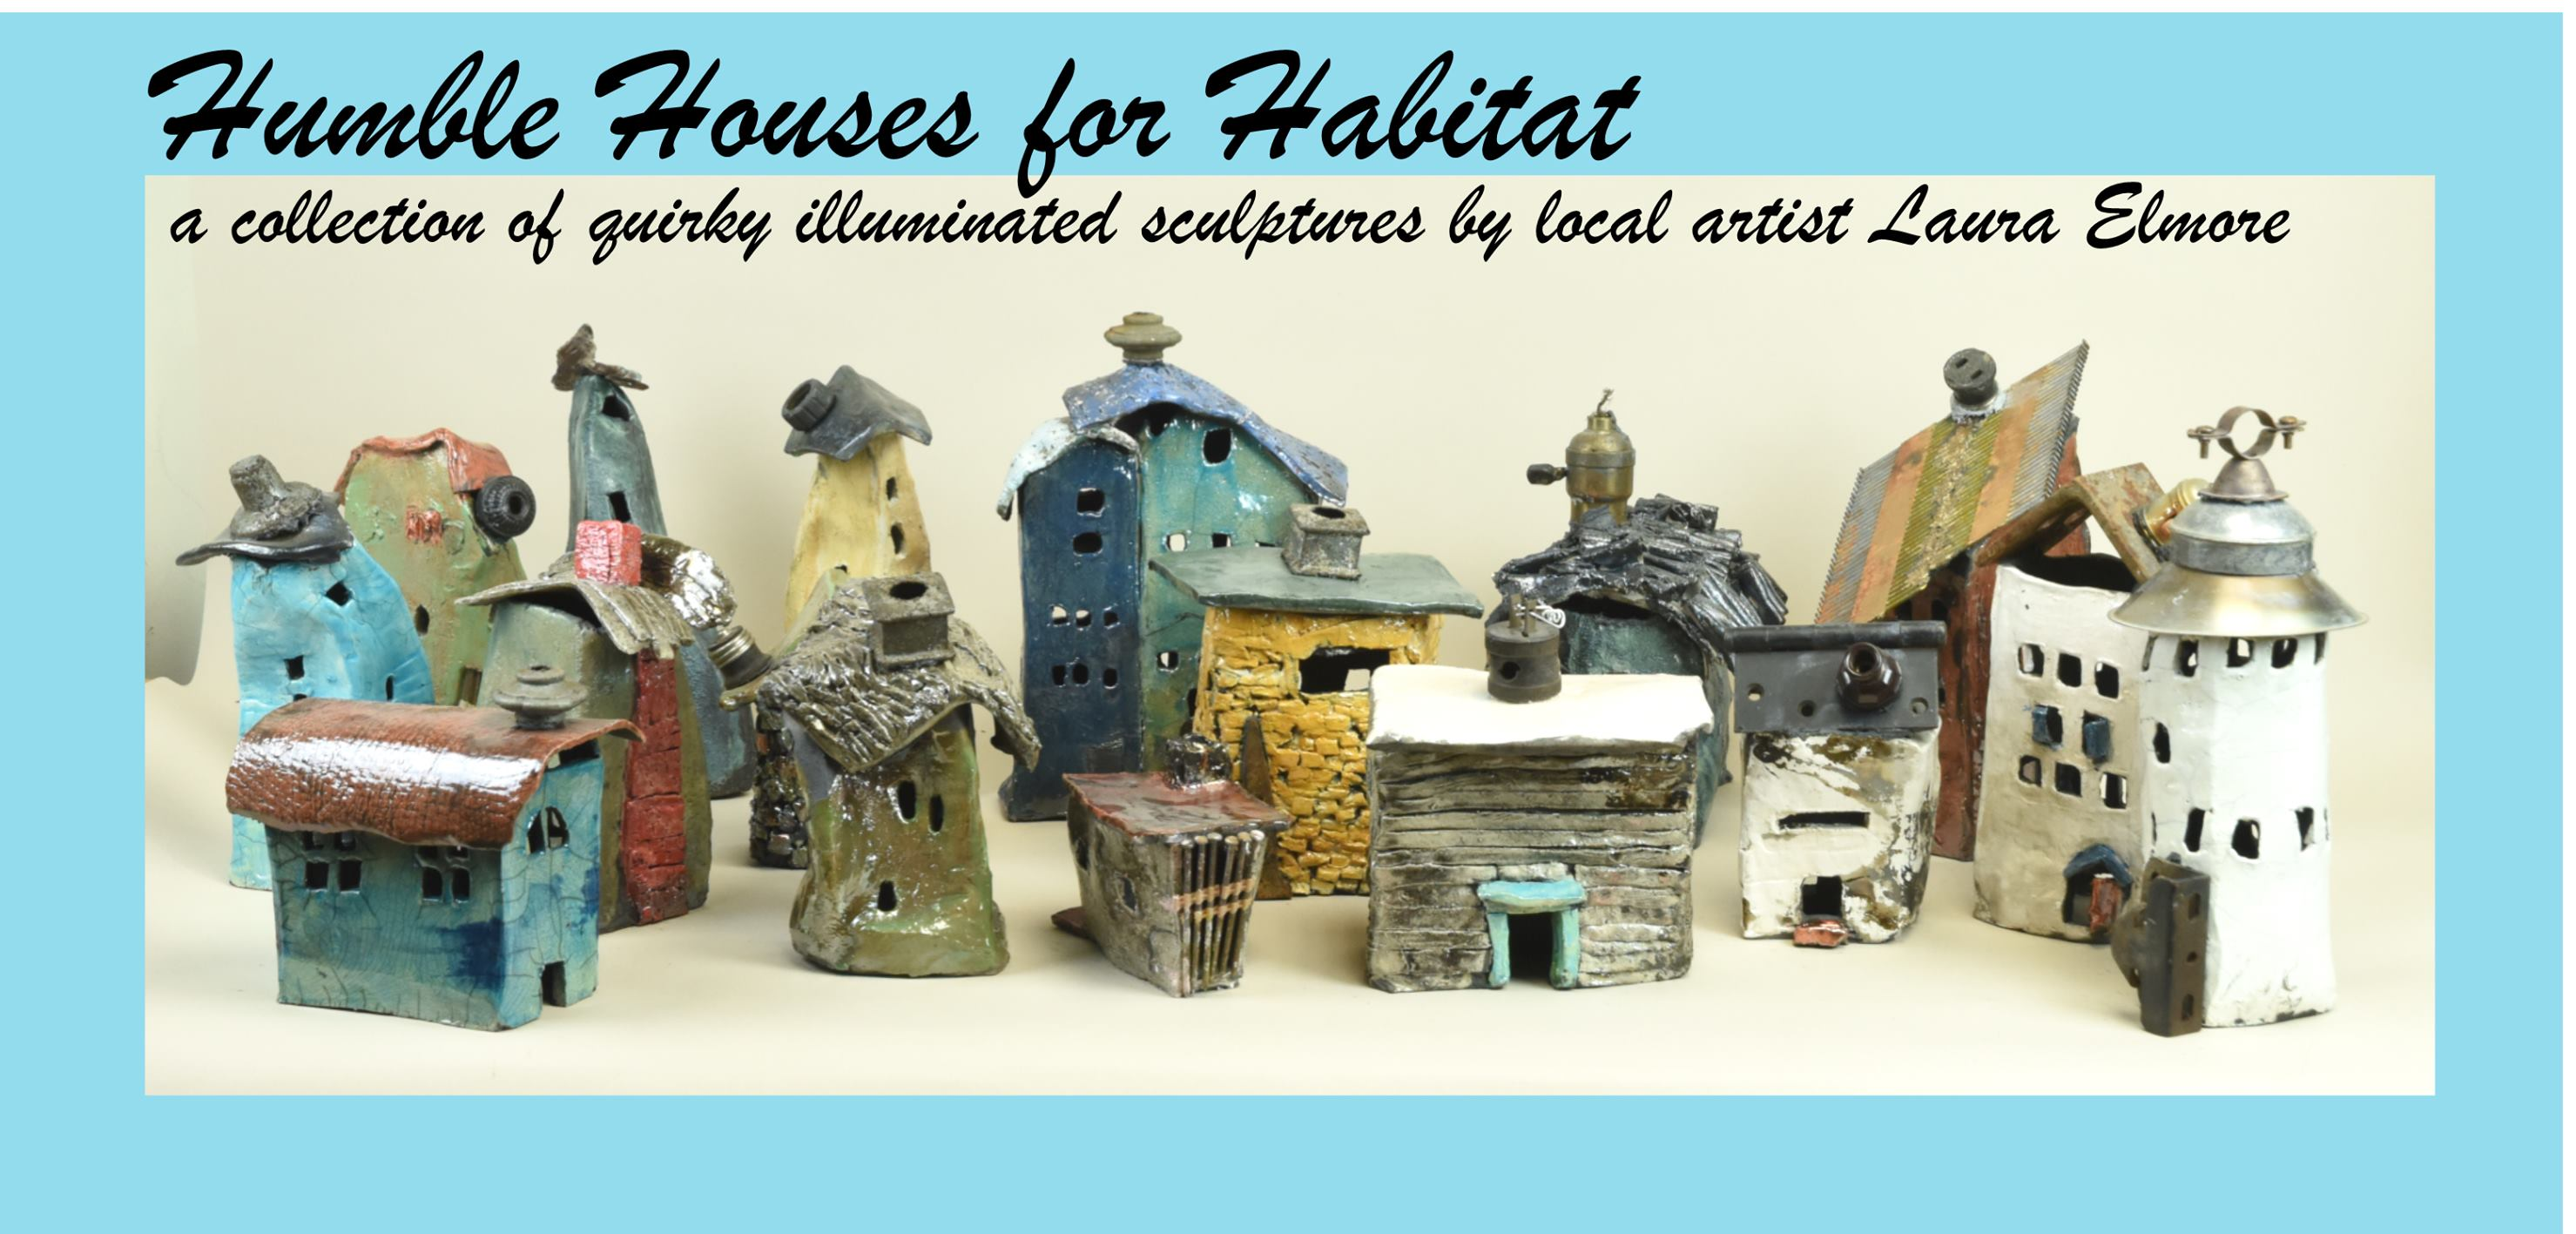 Humble Houses for Habitat 1